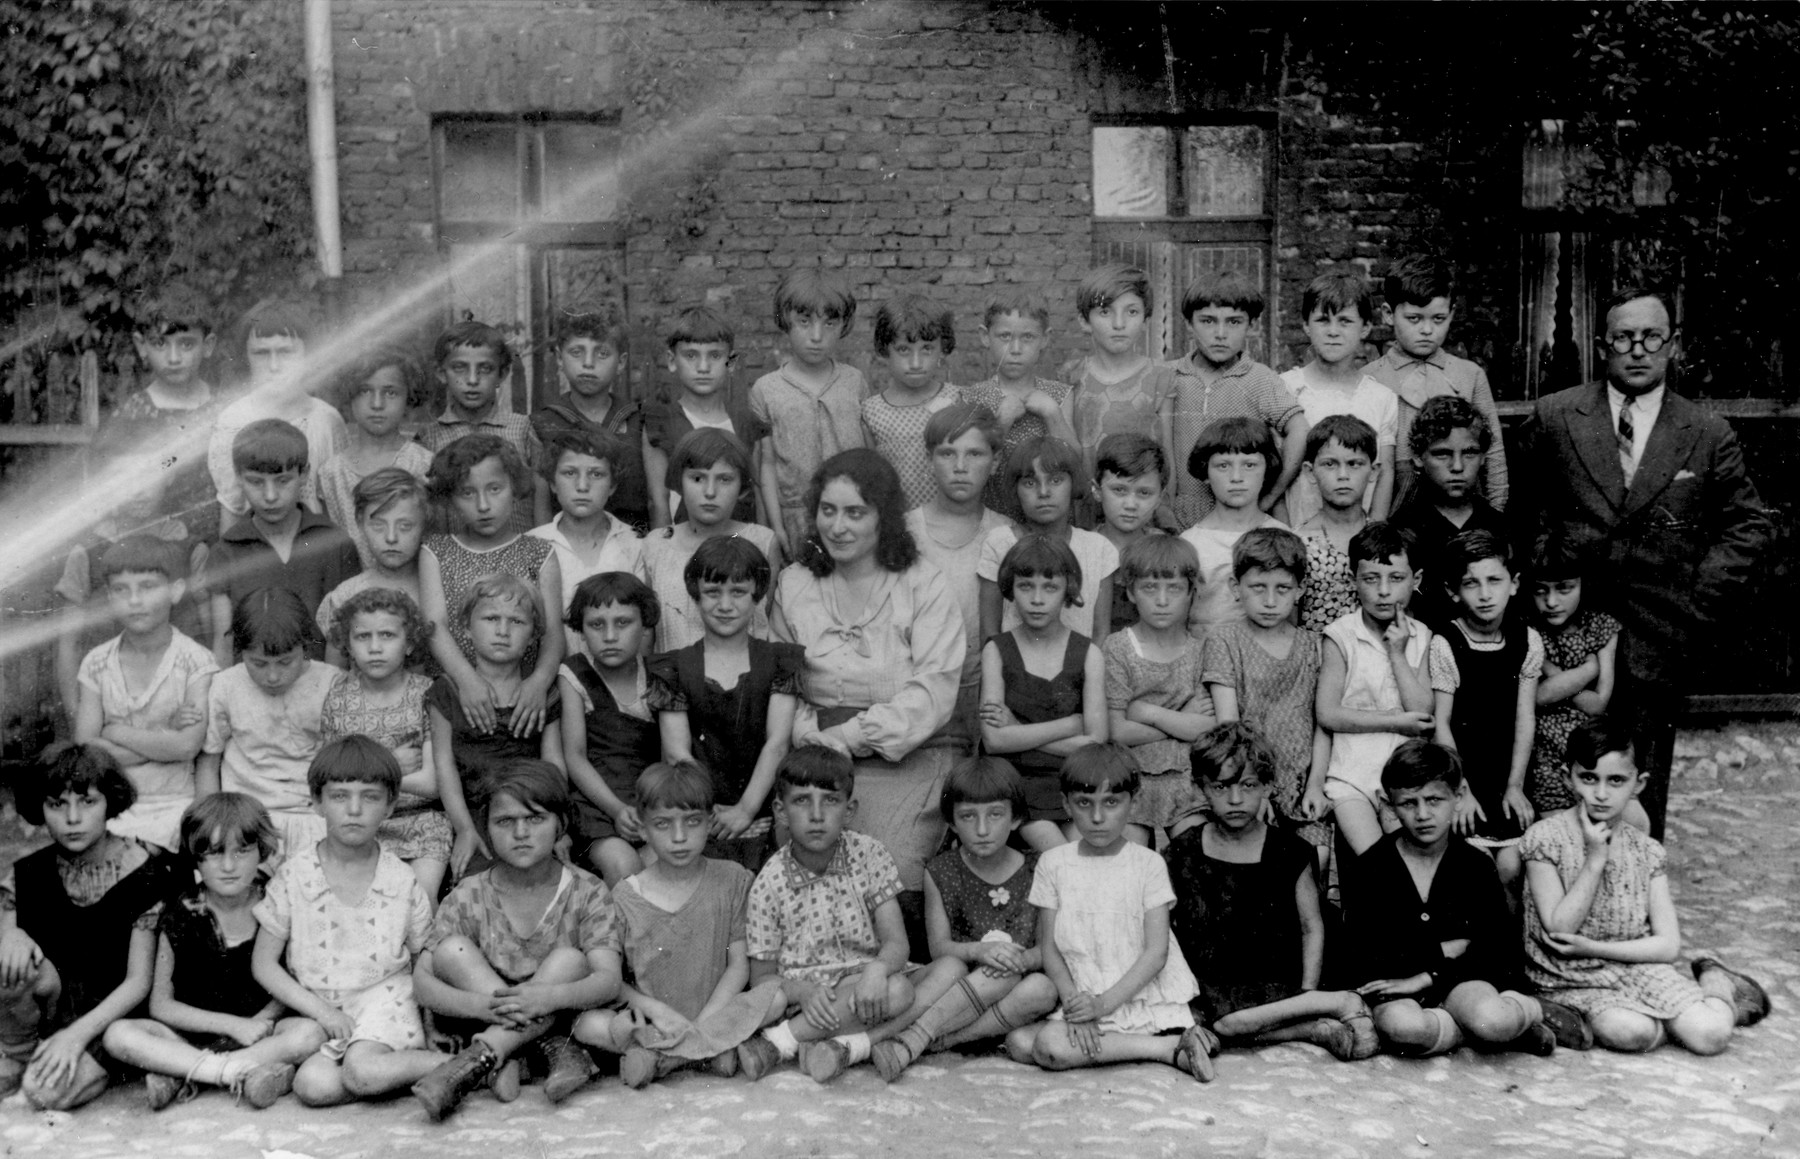 Group portrait of students and their teachers at a Jewish elementary school in Bedzin.